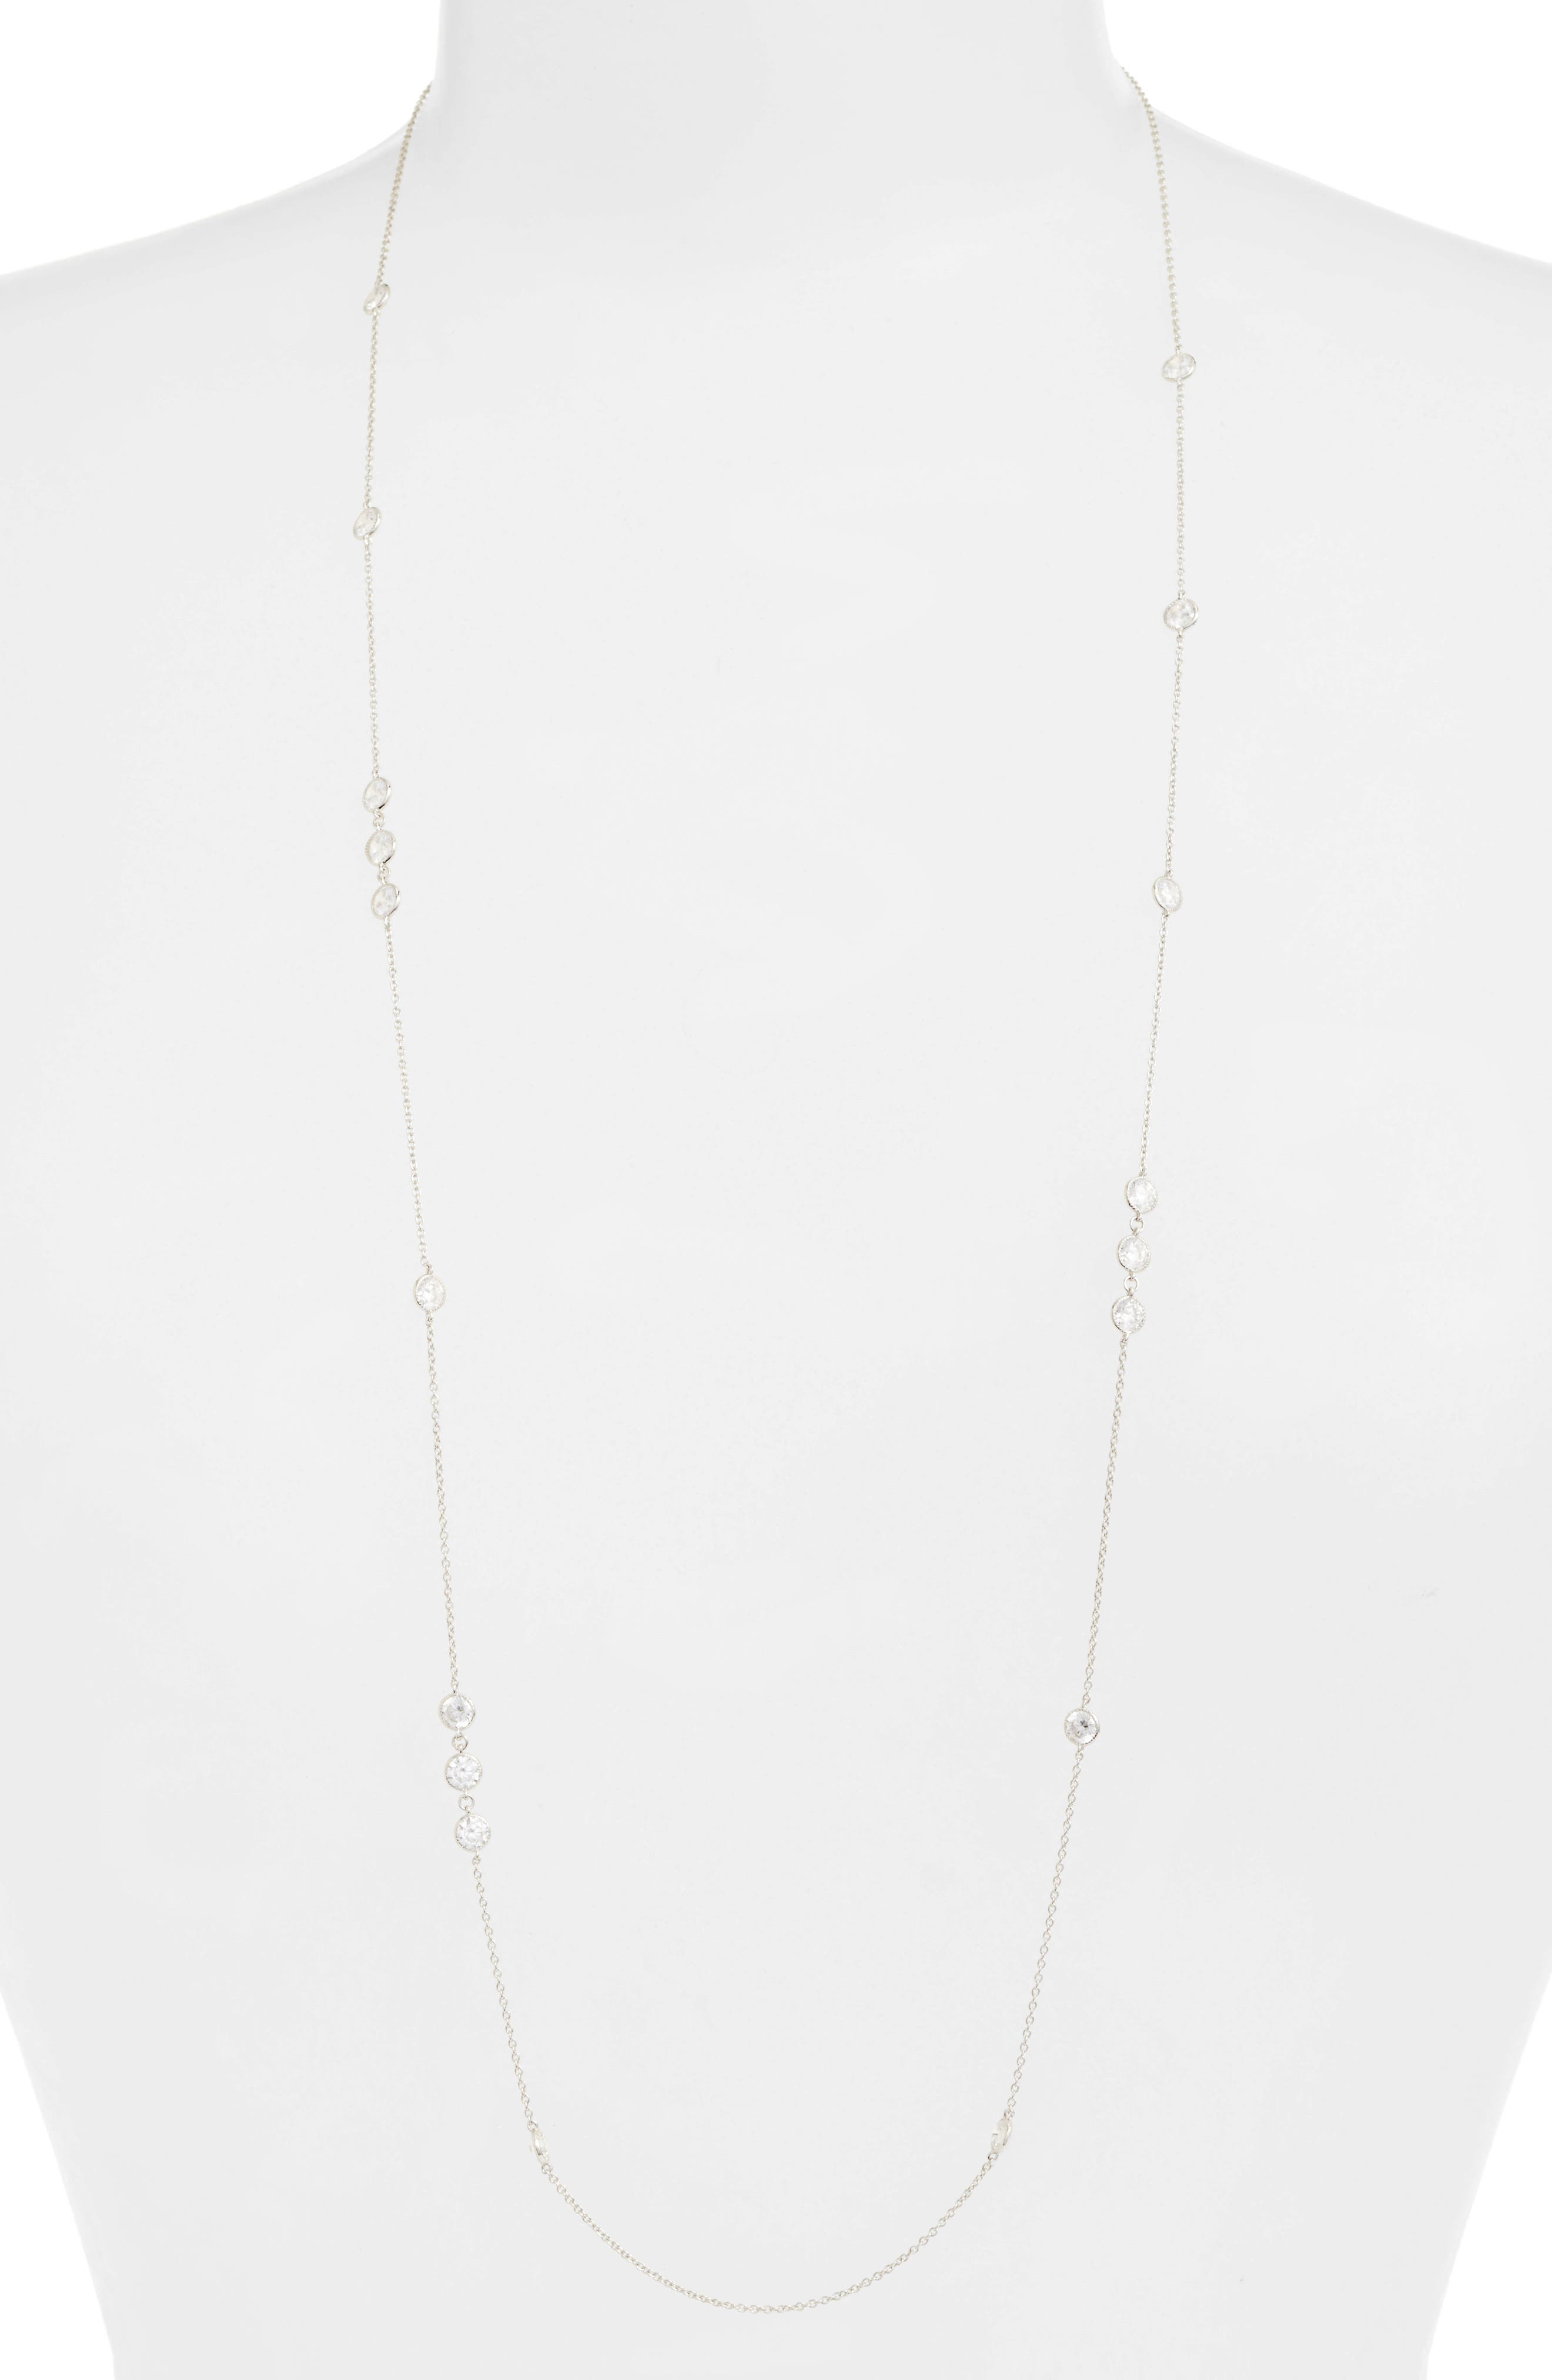 Long Simulated Diamond Station Necklace,                             Main thumbnail 1, color,                             SILVER